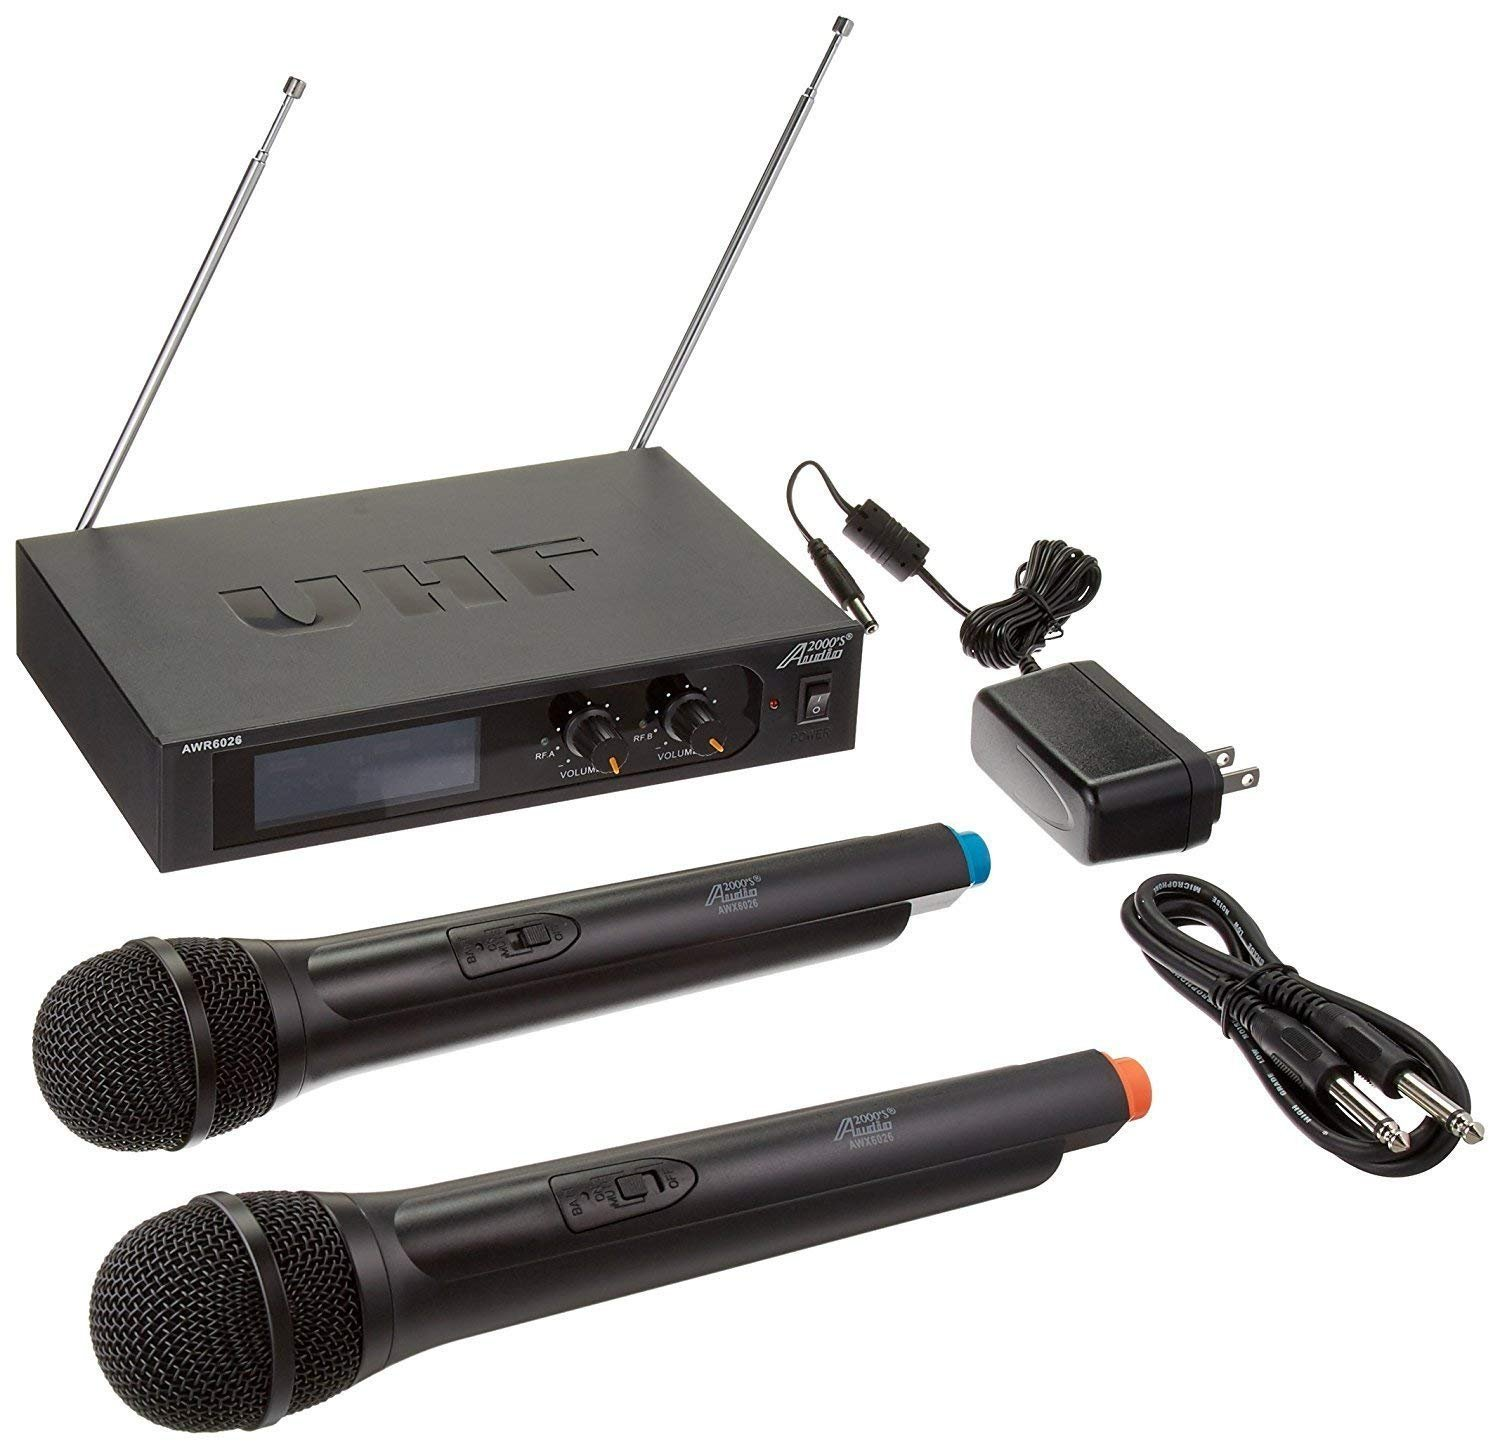 Audio2000'S S6026 Two-Channel System with Two Handheld Wireless Microphones Audio2000s